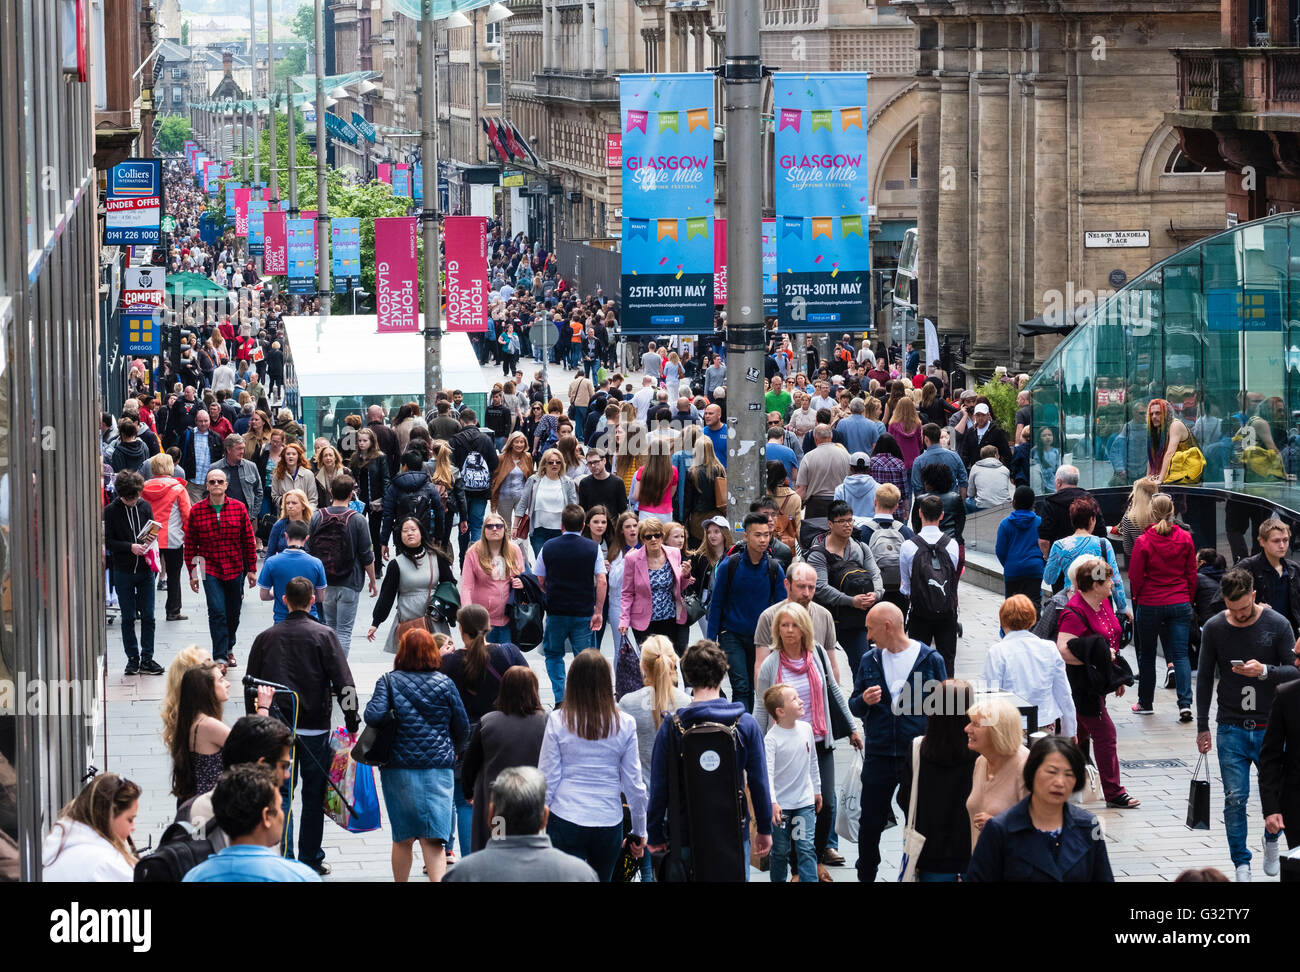 View of shoppers on busy Buchanan Street, popular shopping street,  in central Glasgow United Kingdom - Stock Image